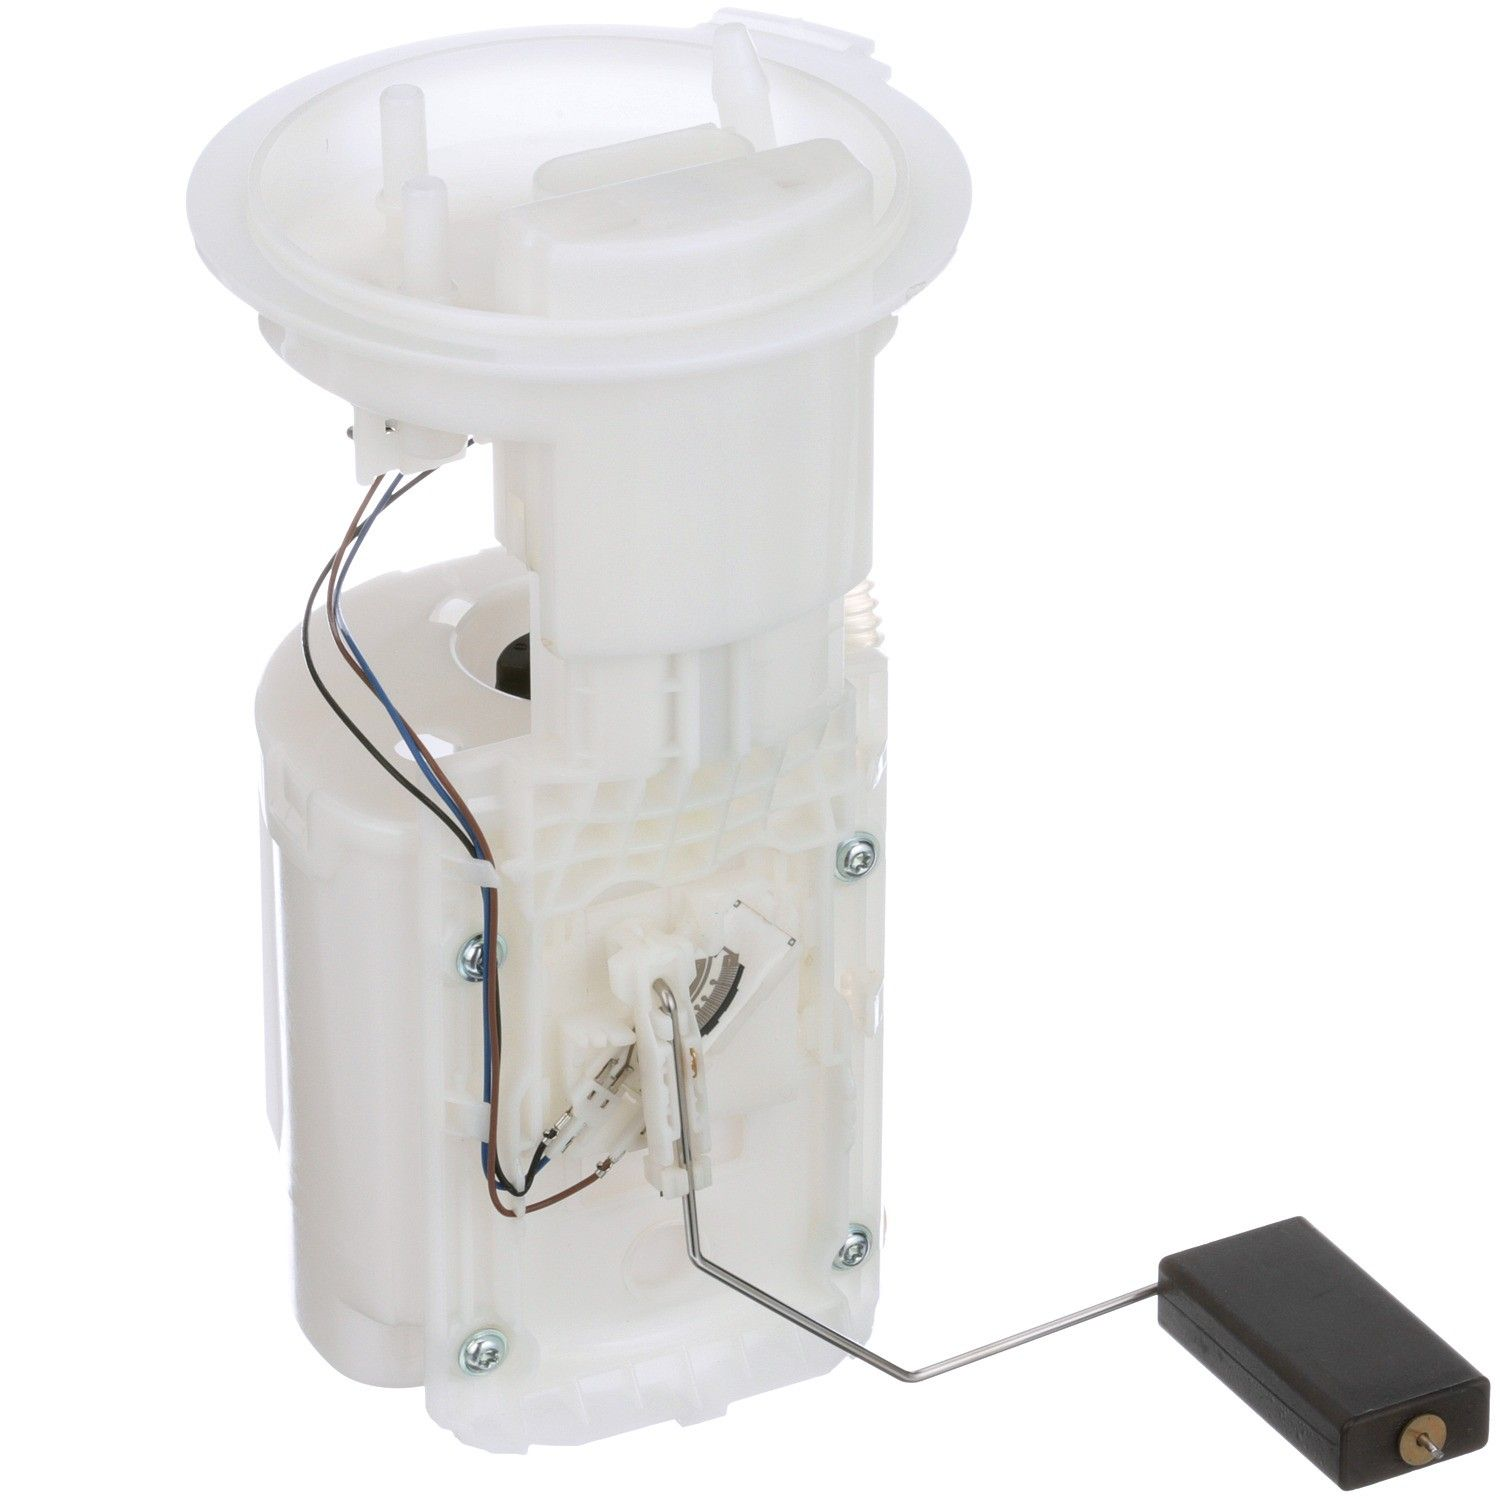 Volkswagen Beetle Fuel Pump Module Assembly Replacement Airtex Details About Electric Intank E8424m For Vw 2013 4 Cyl 20l Delphi Fg1403 External Strainer Once New Has Been Installed And Tank